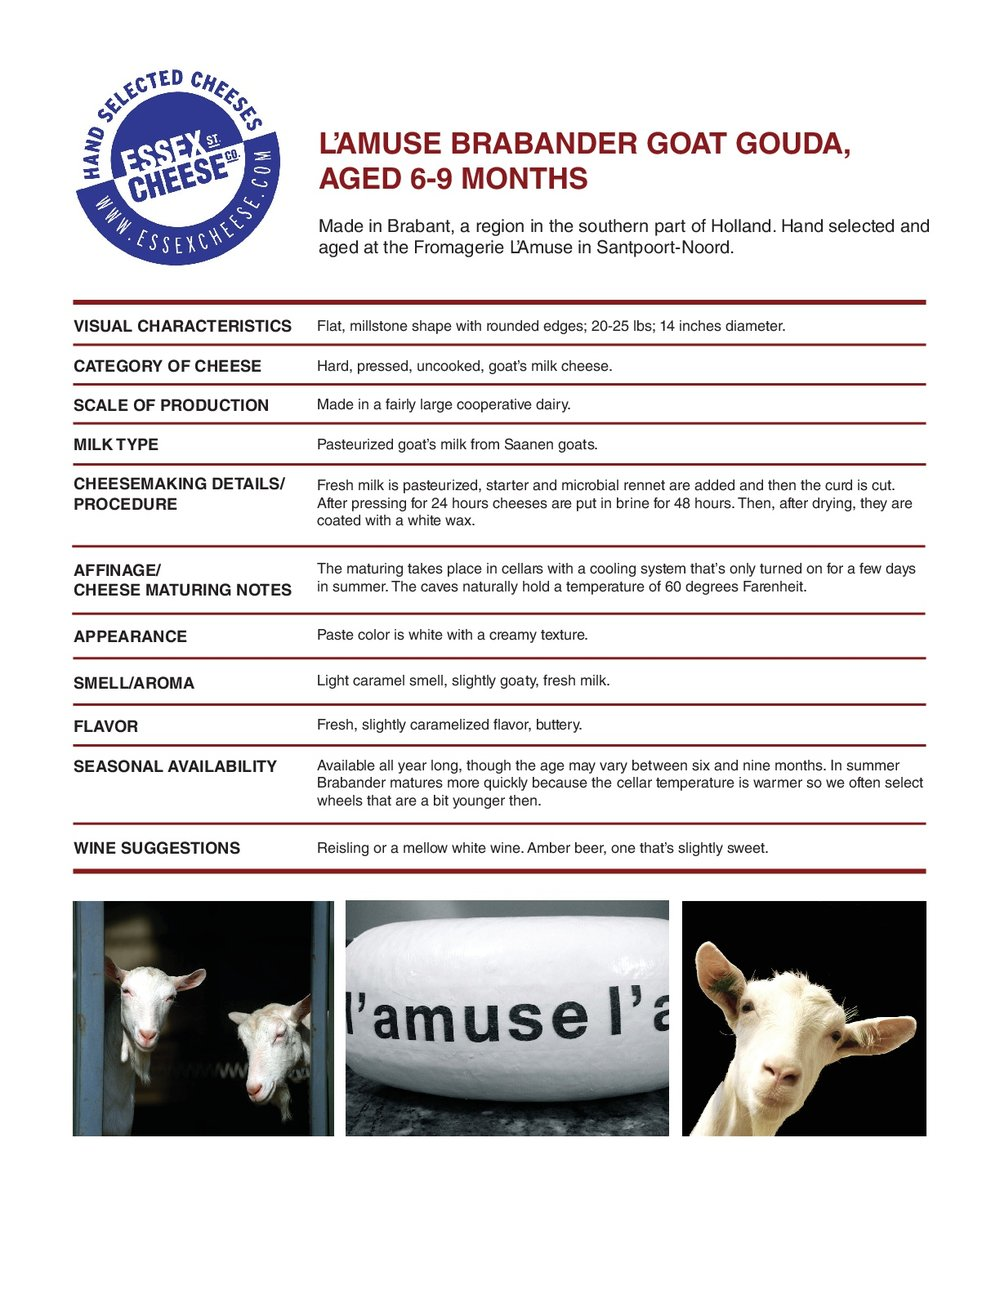 BrabanderGoat Gouda Specifications - The gouda that's as tasty as a milk shake. 8.5 x 11 inch PDF to download and print for training and reference.